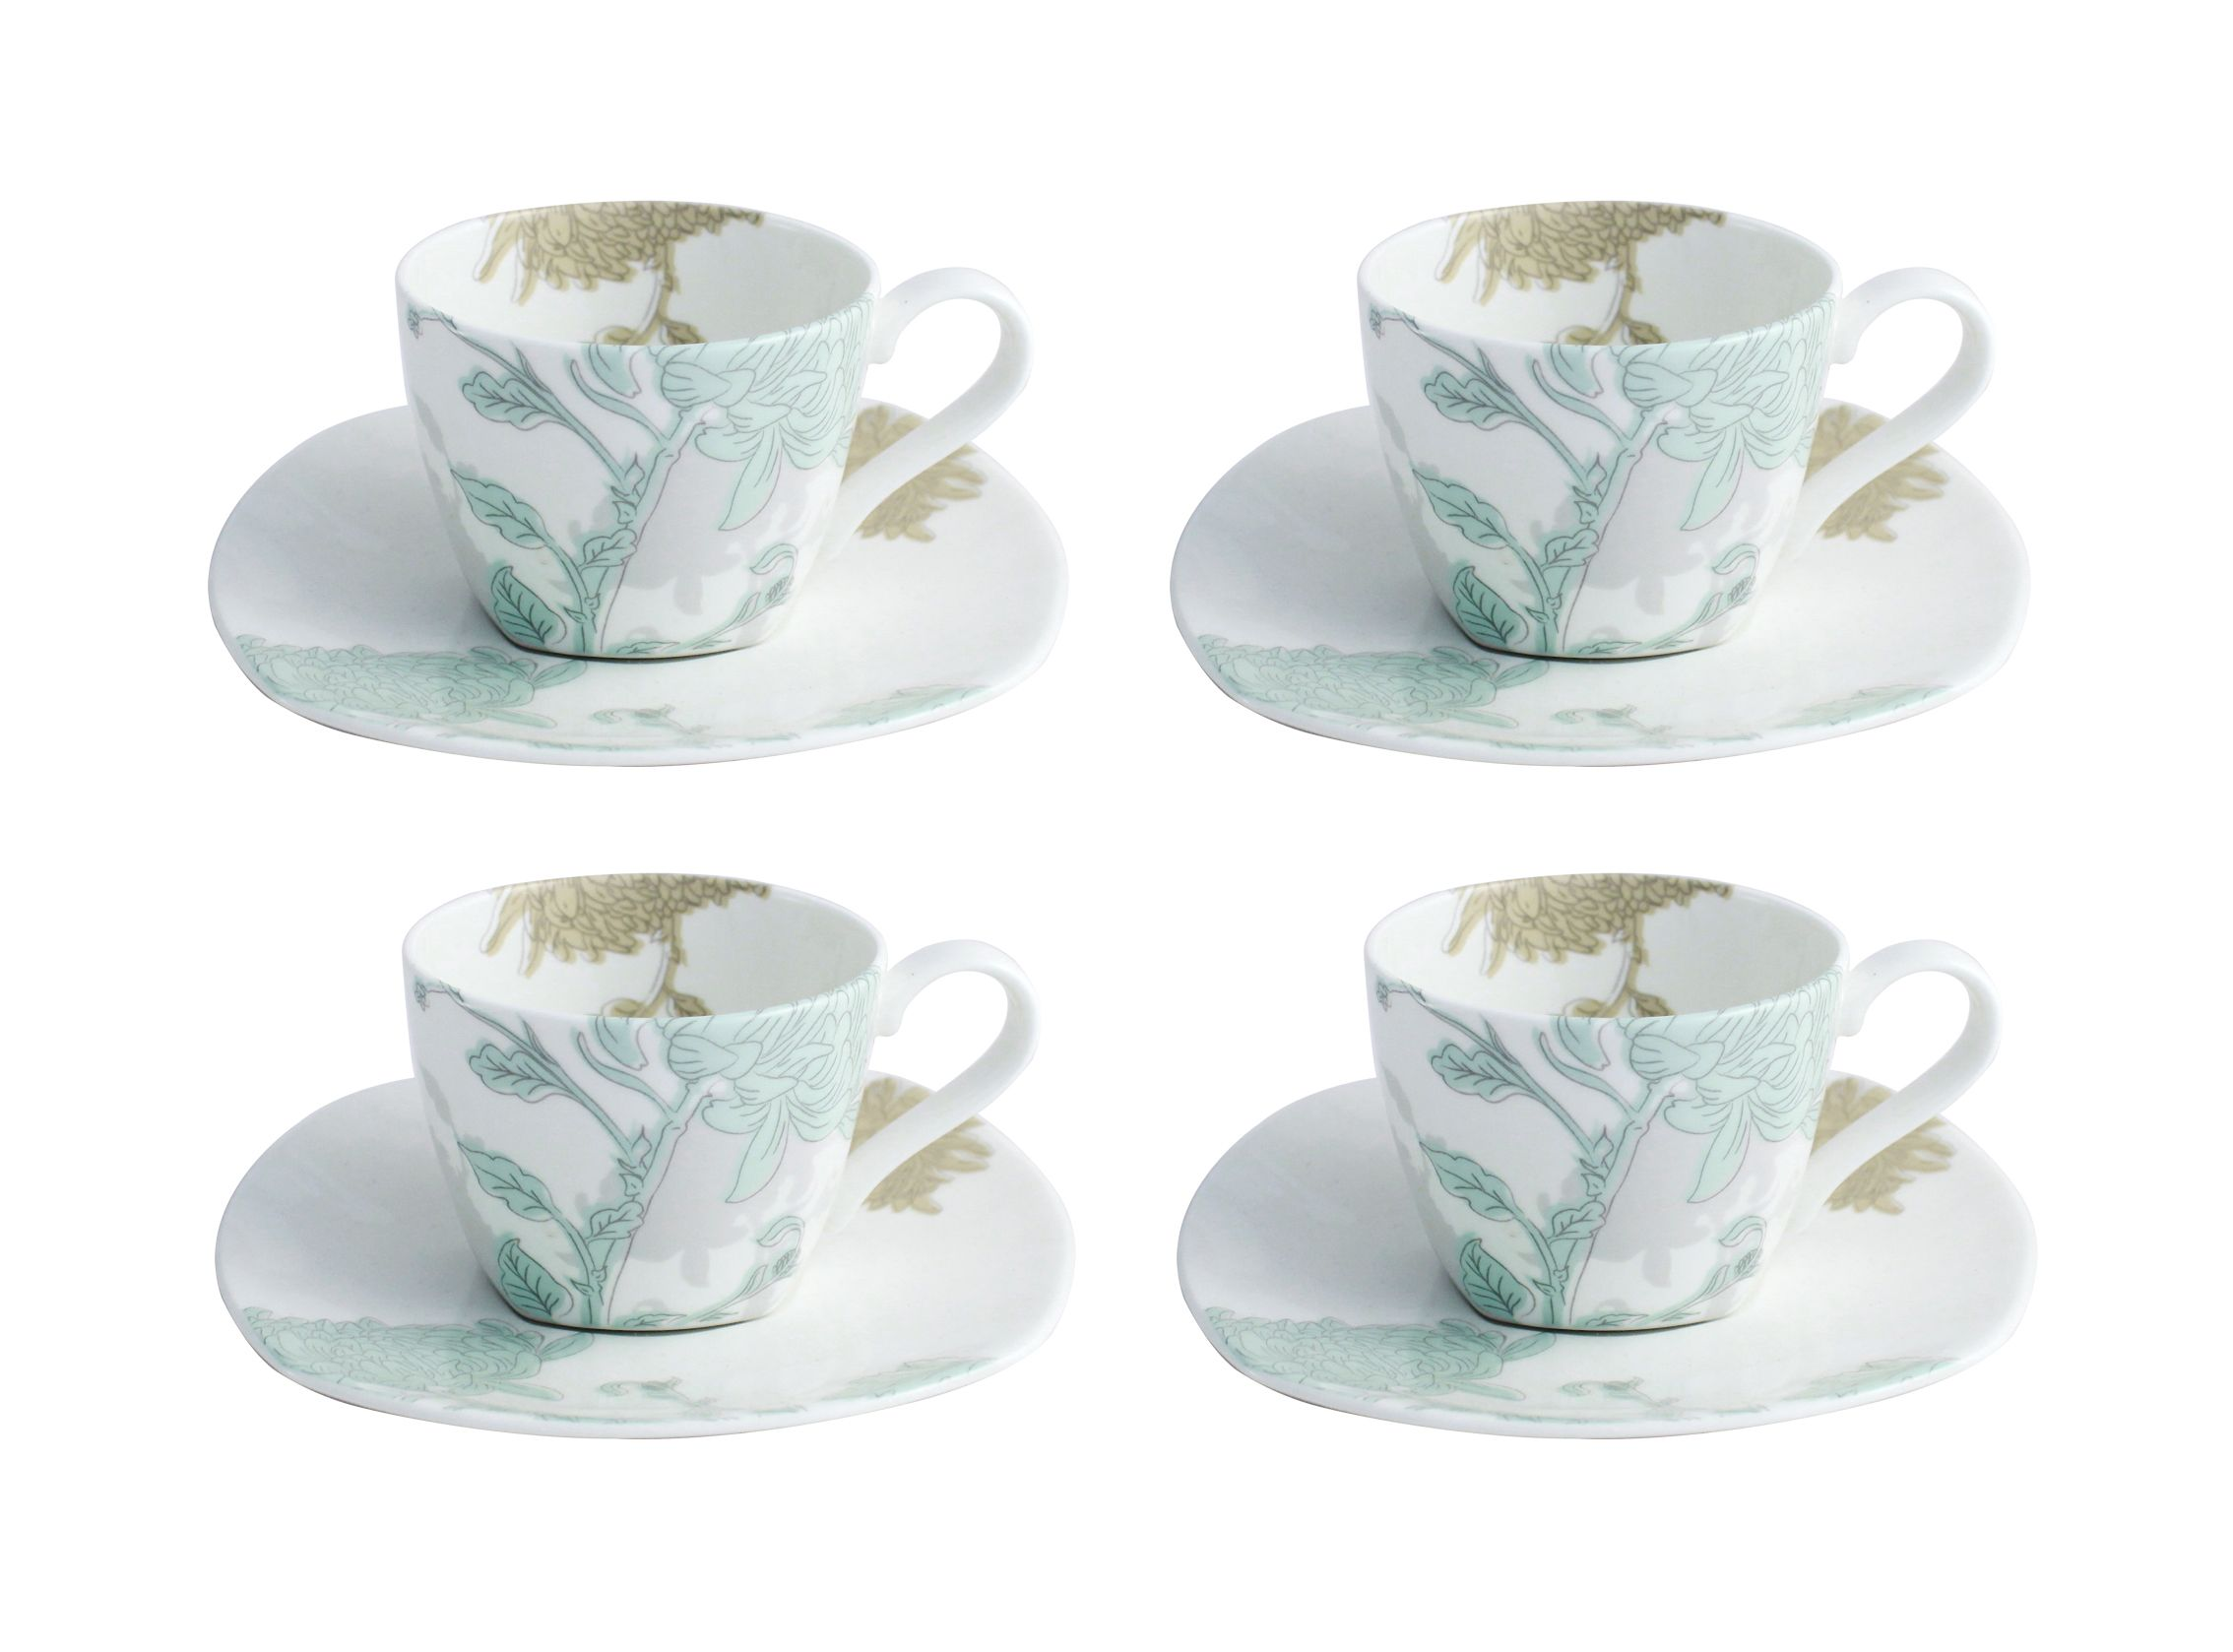 Aynsley Aynsley Cambridge teacups & saucer set of 4